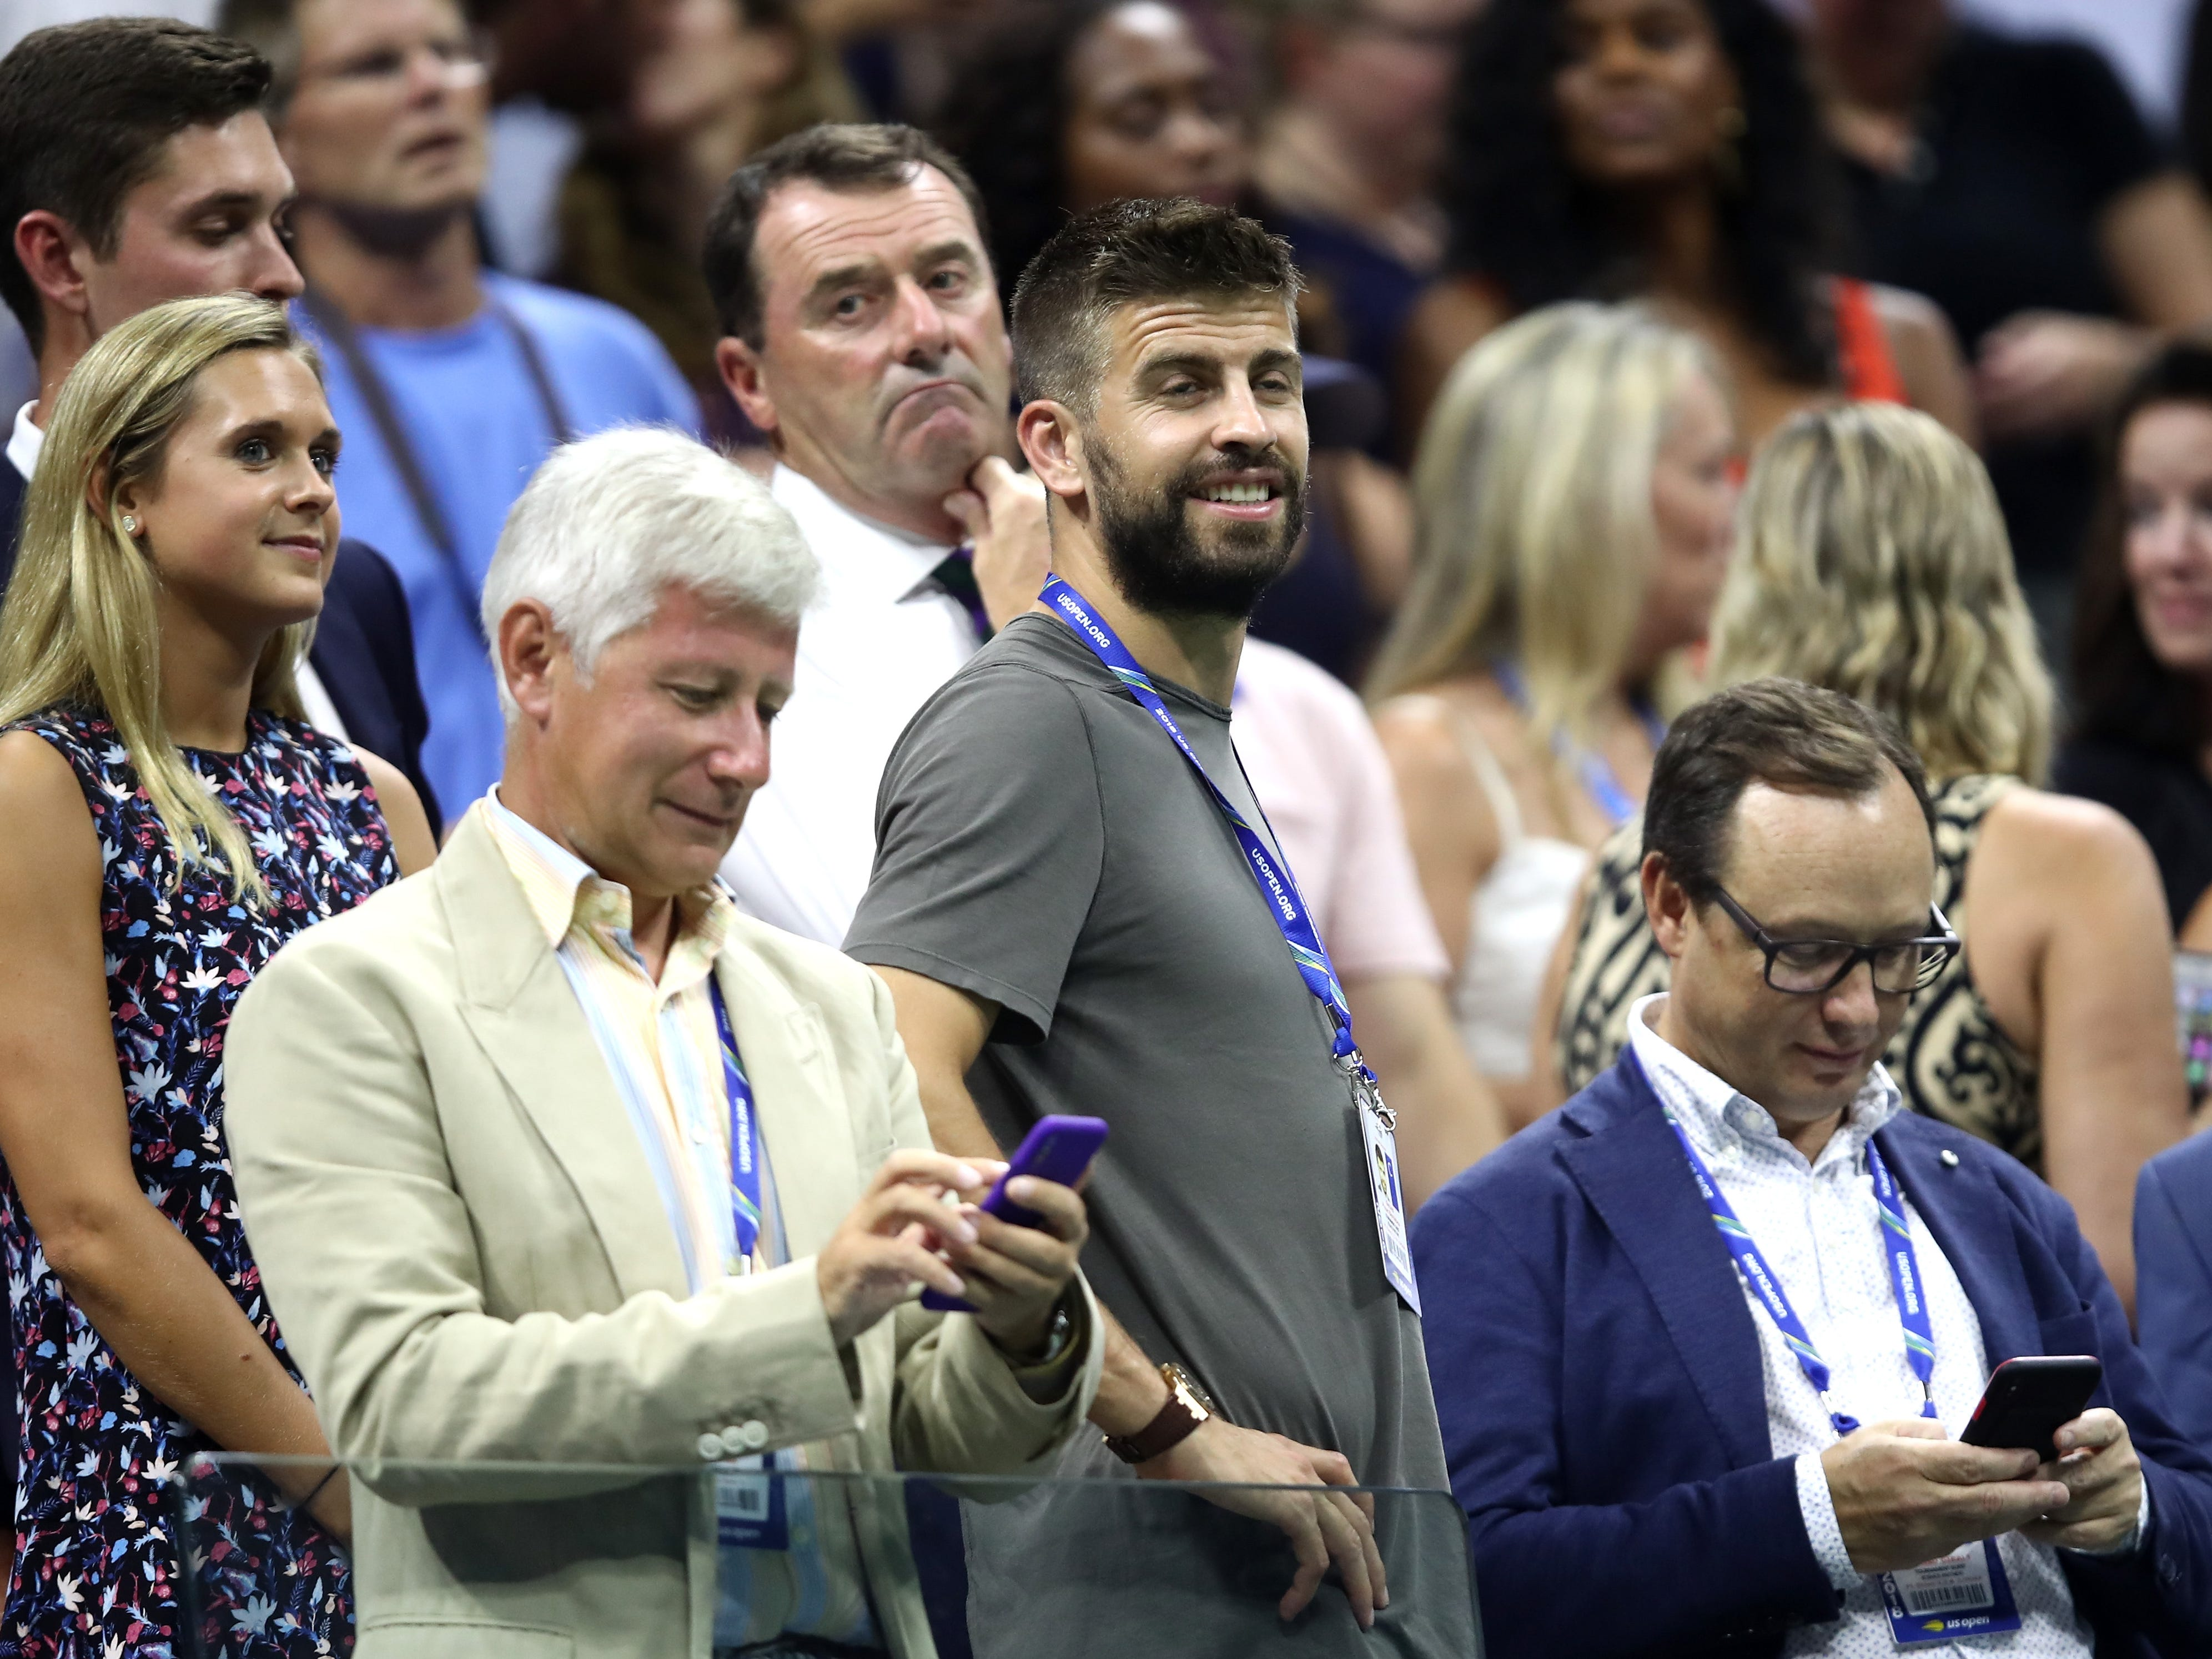 FC Barcelona soccer player Gerard Pique, front center, watches the semifinal match between Naomi Osaka and Madison Keys.